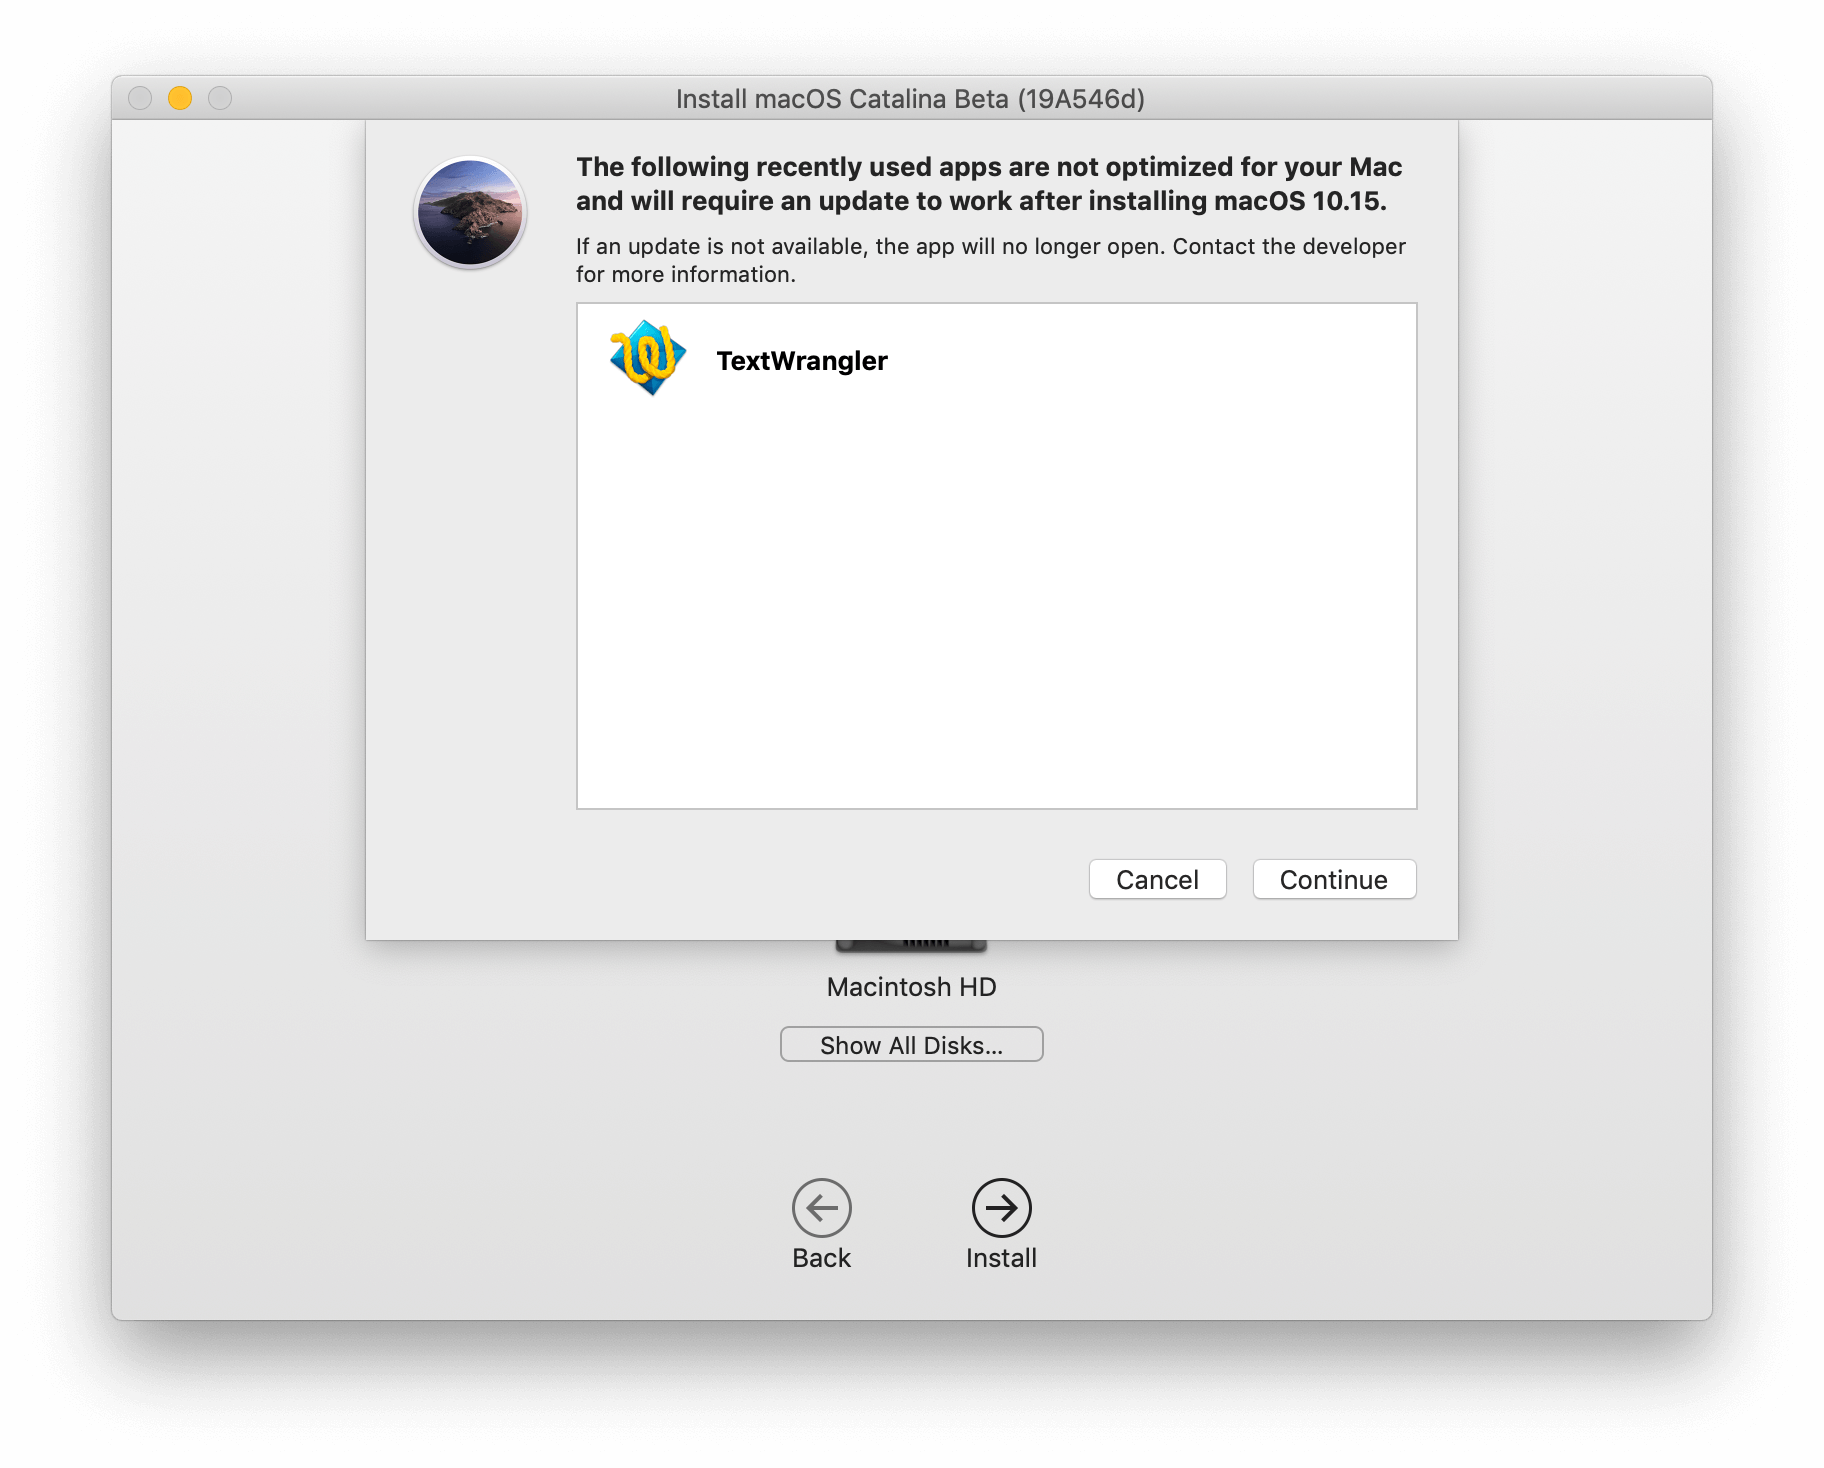 macos catalina requirements